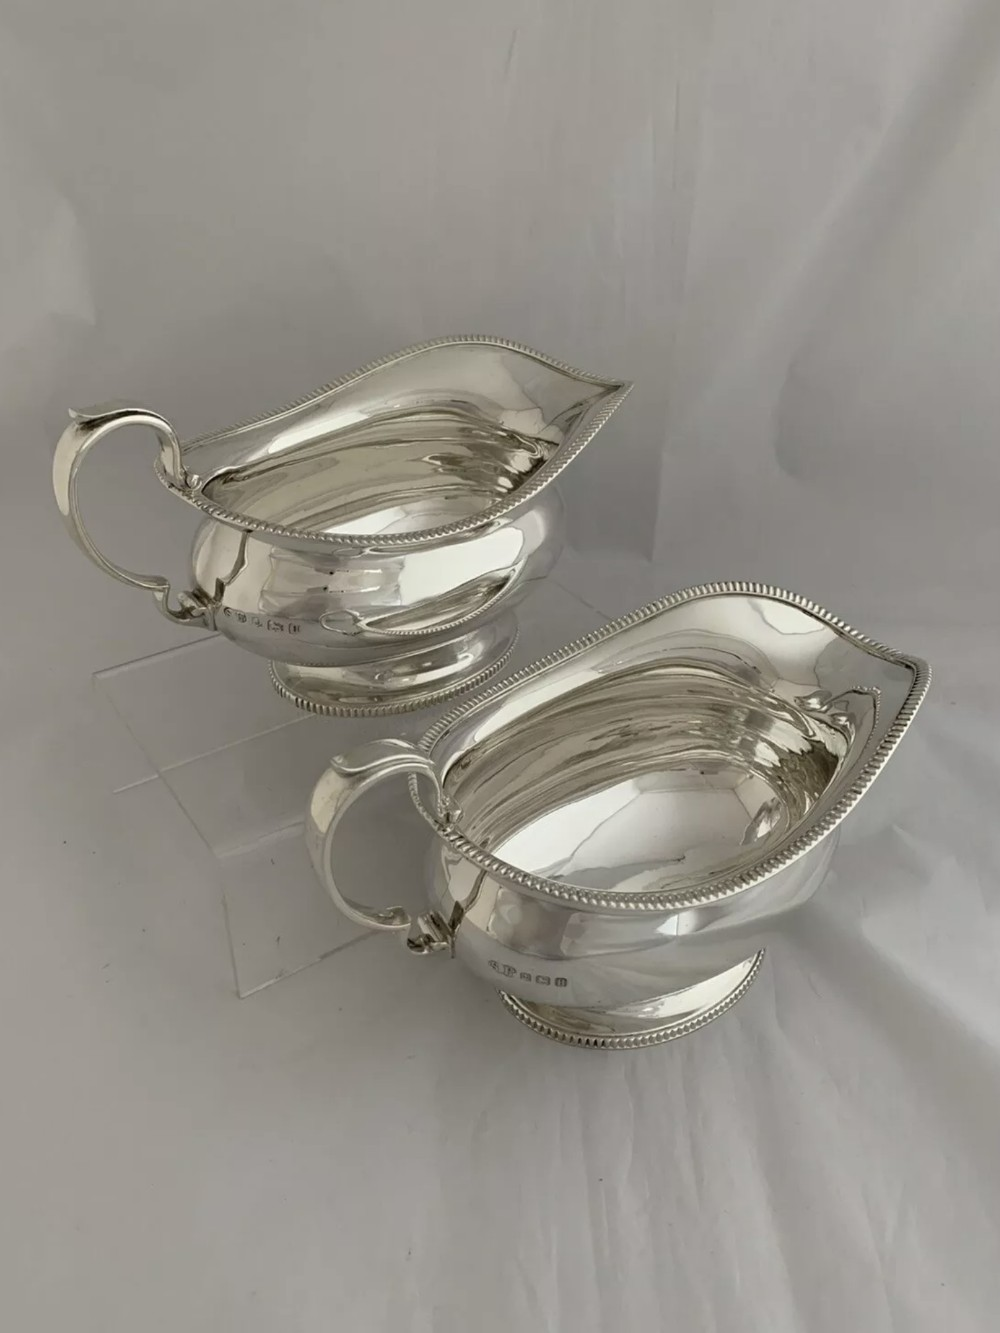 large pair of antique silver gravy boats or sauce boats 1932 birmingham sterling